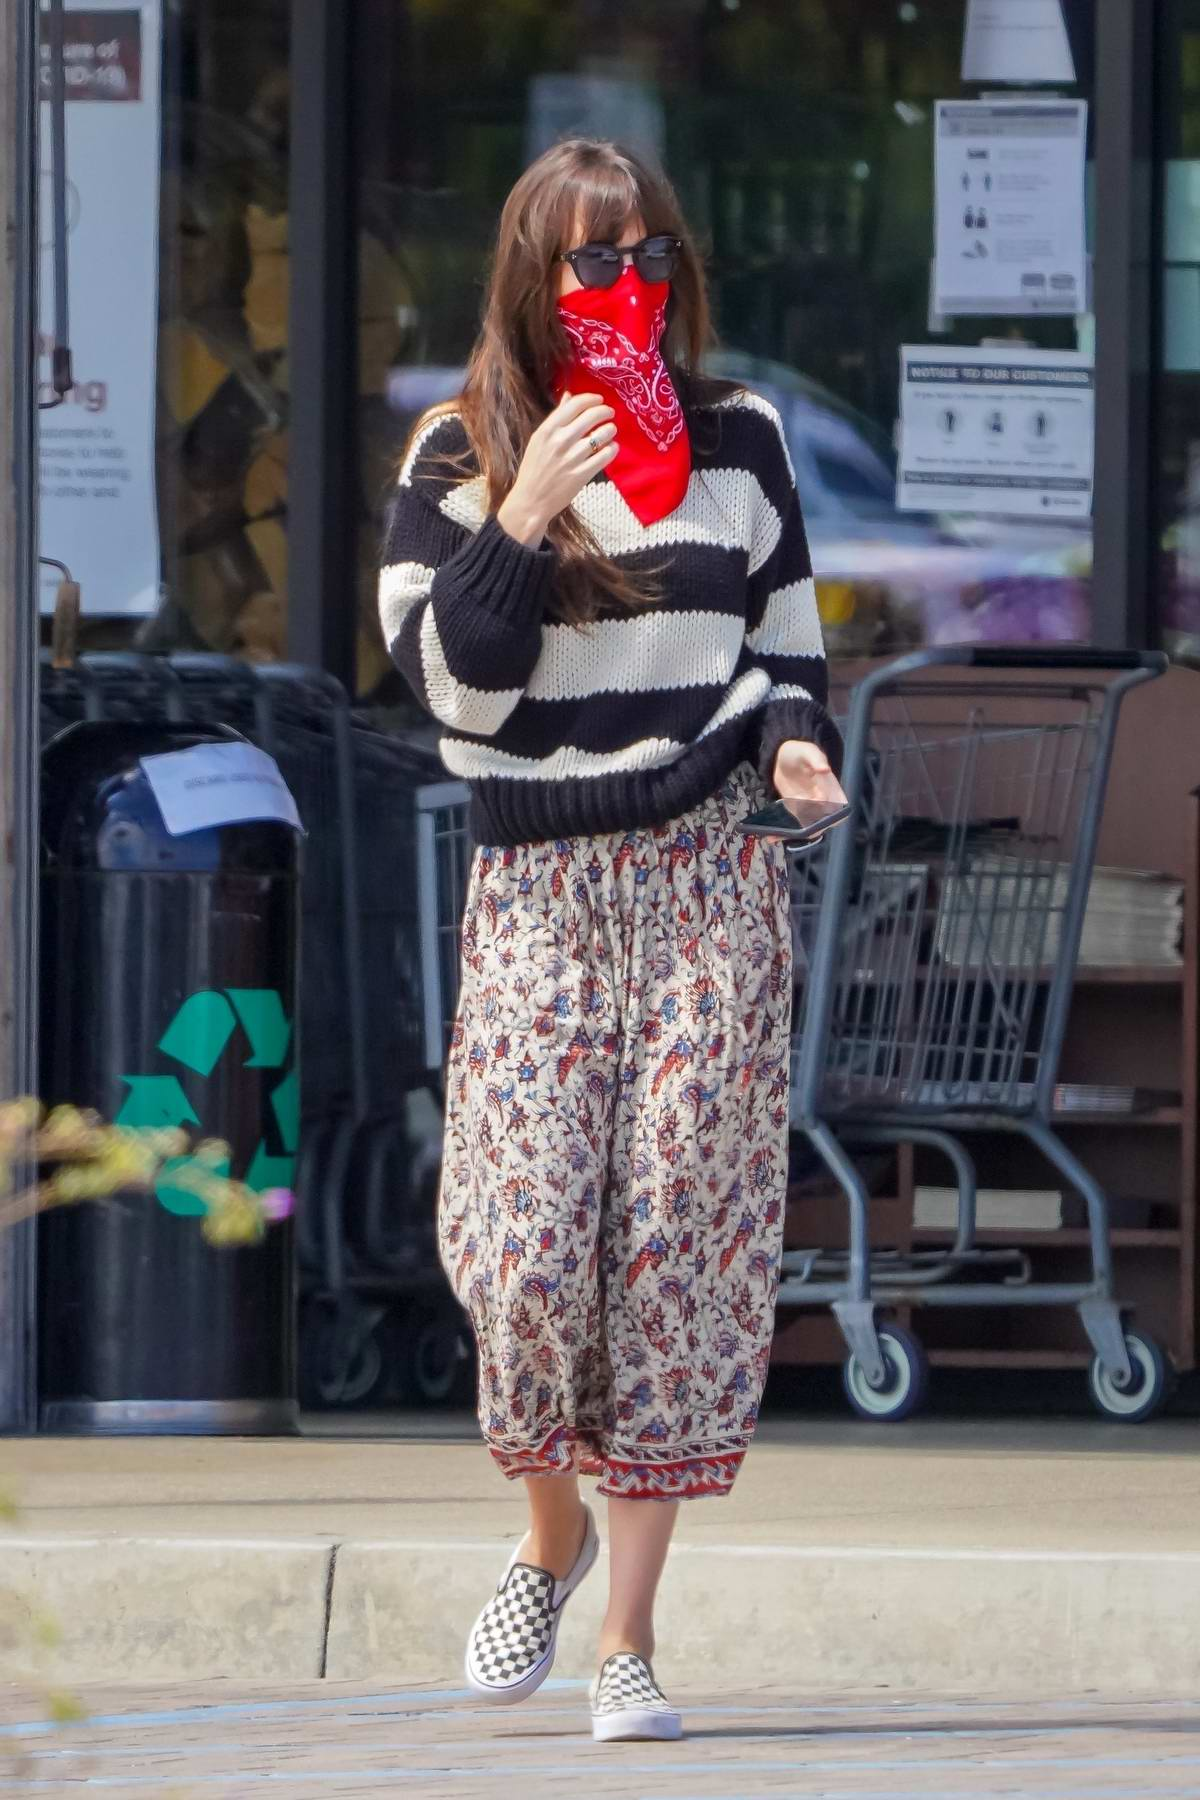 Dakota Johnson wears a floral print skirt and striped sweater as she picks up groceries in Malibu, California